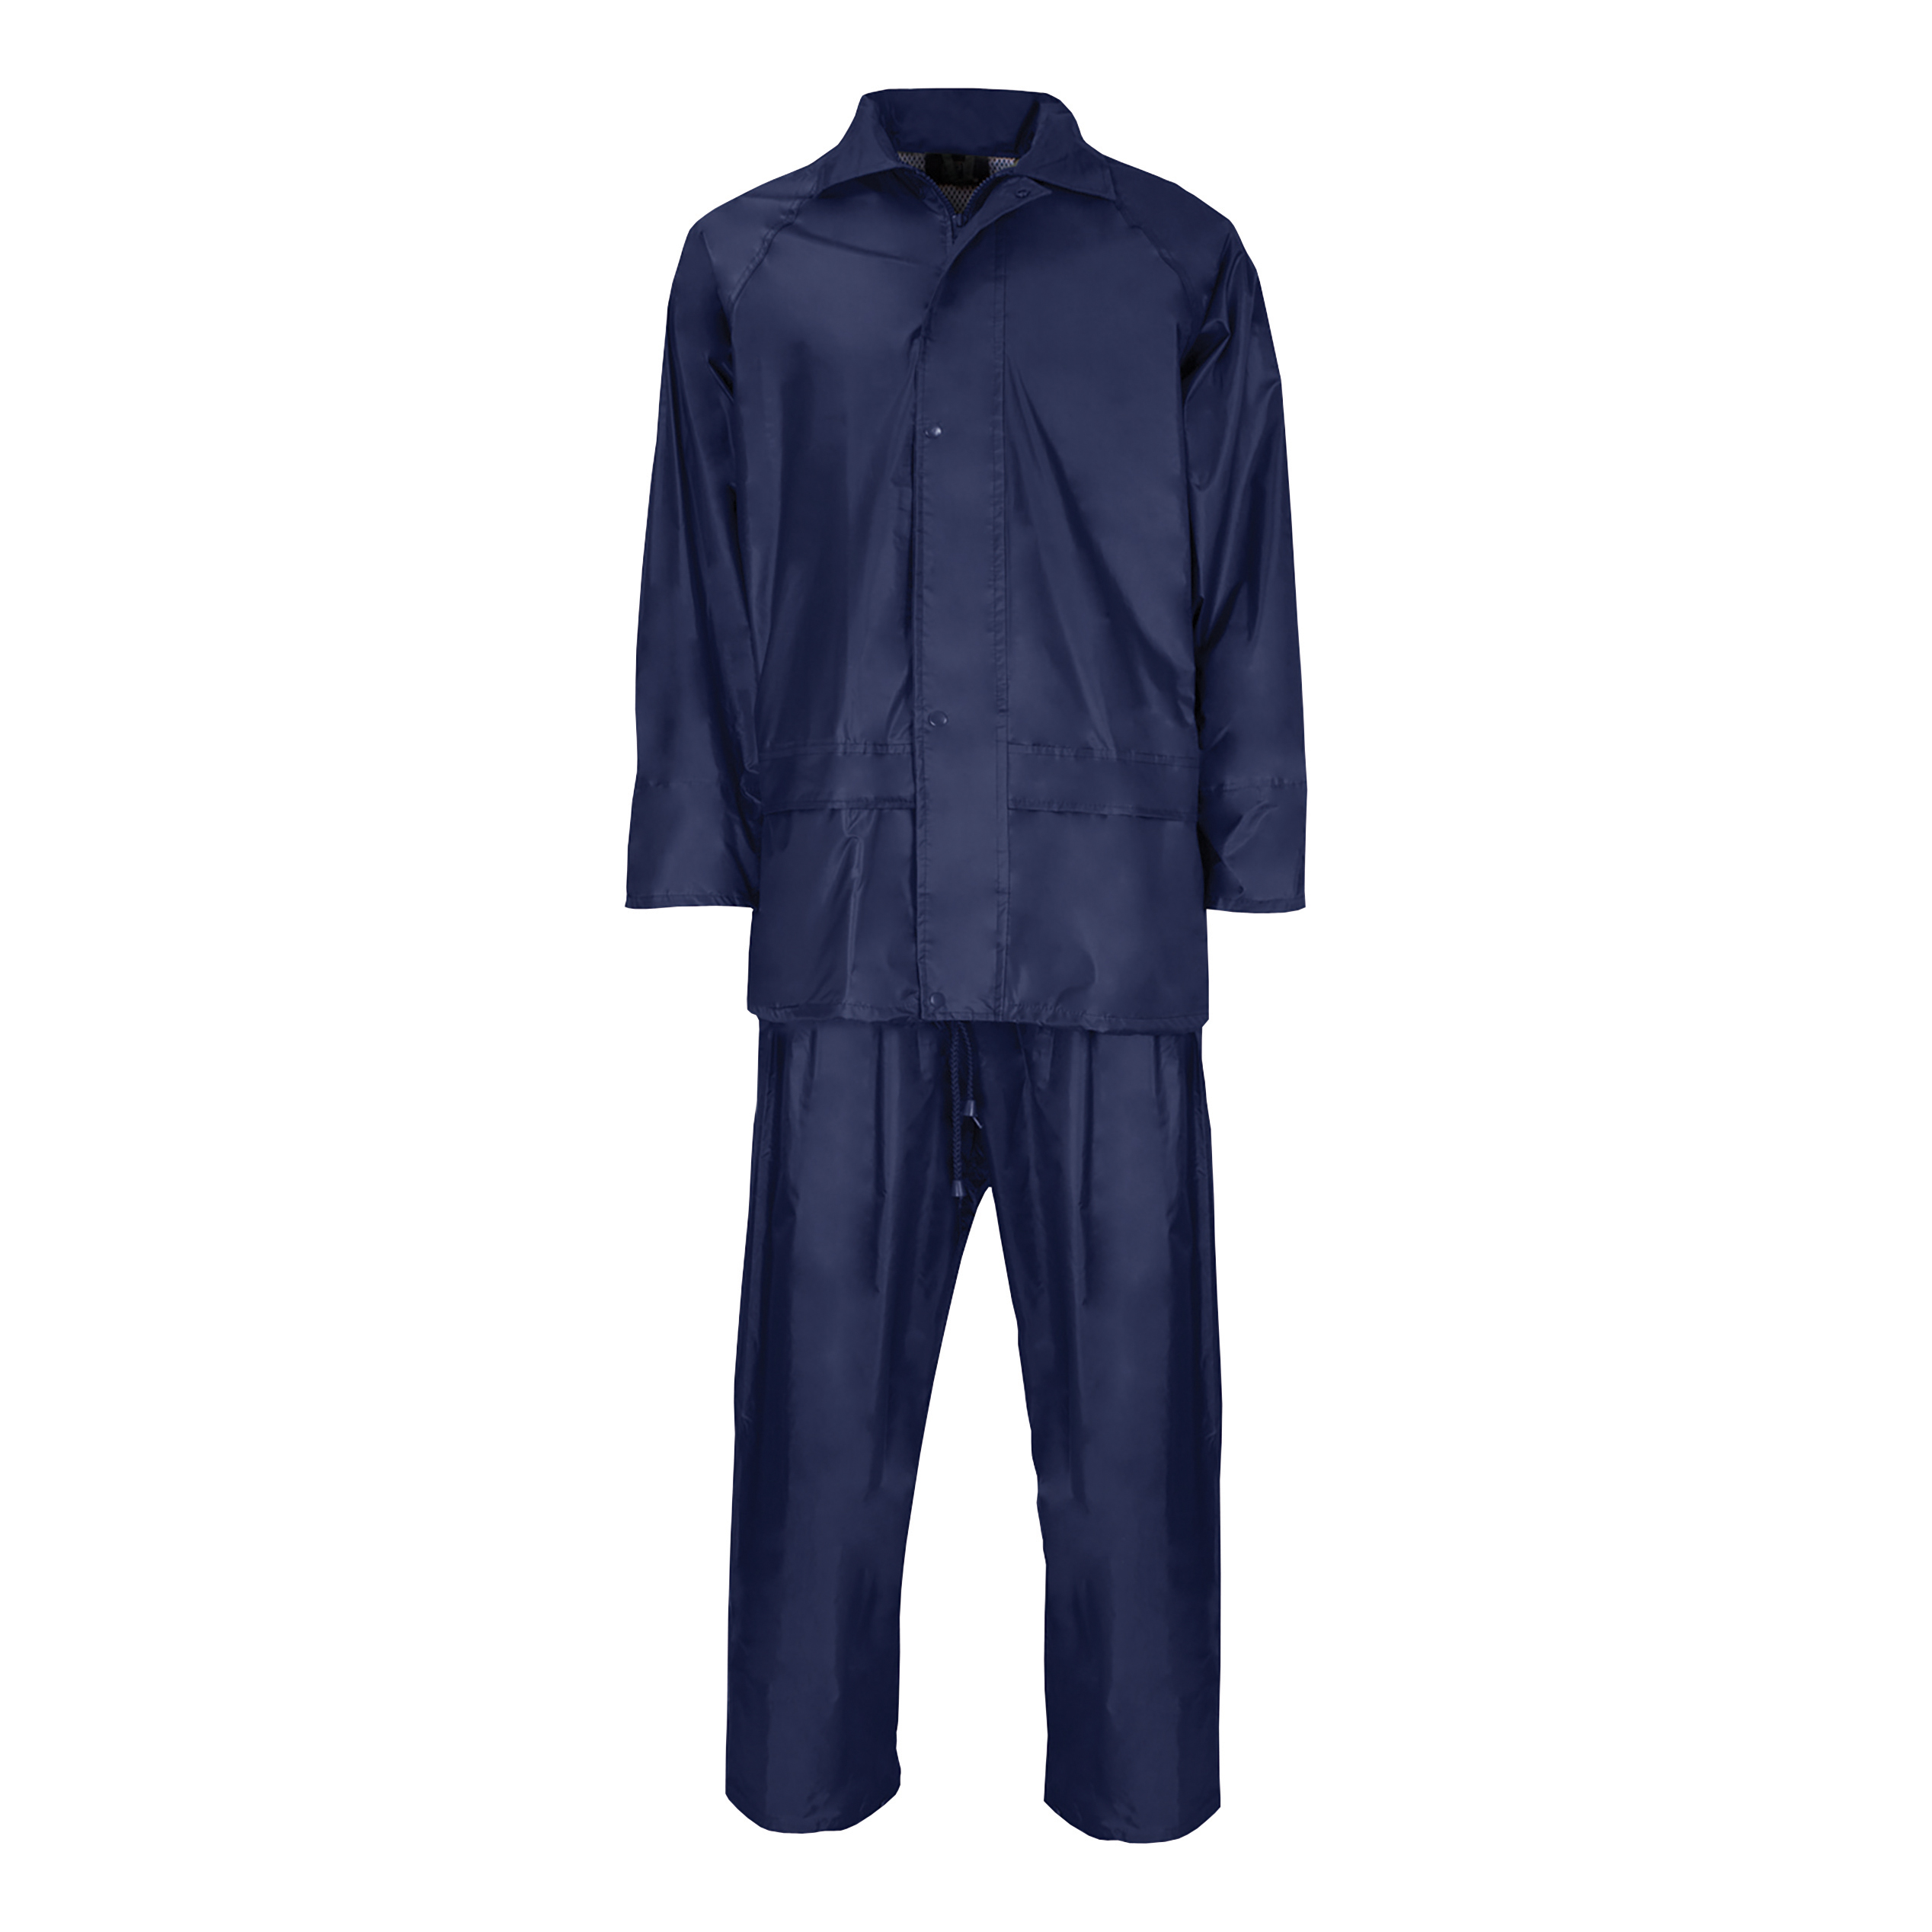 Weatherproof Rainsuit Polyester/PVC with Elasticated Waisted Trousers Small Navy Ref NBDSNS *Approx 3 Day Leadtime*